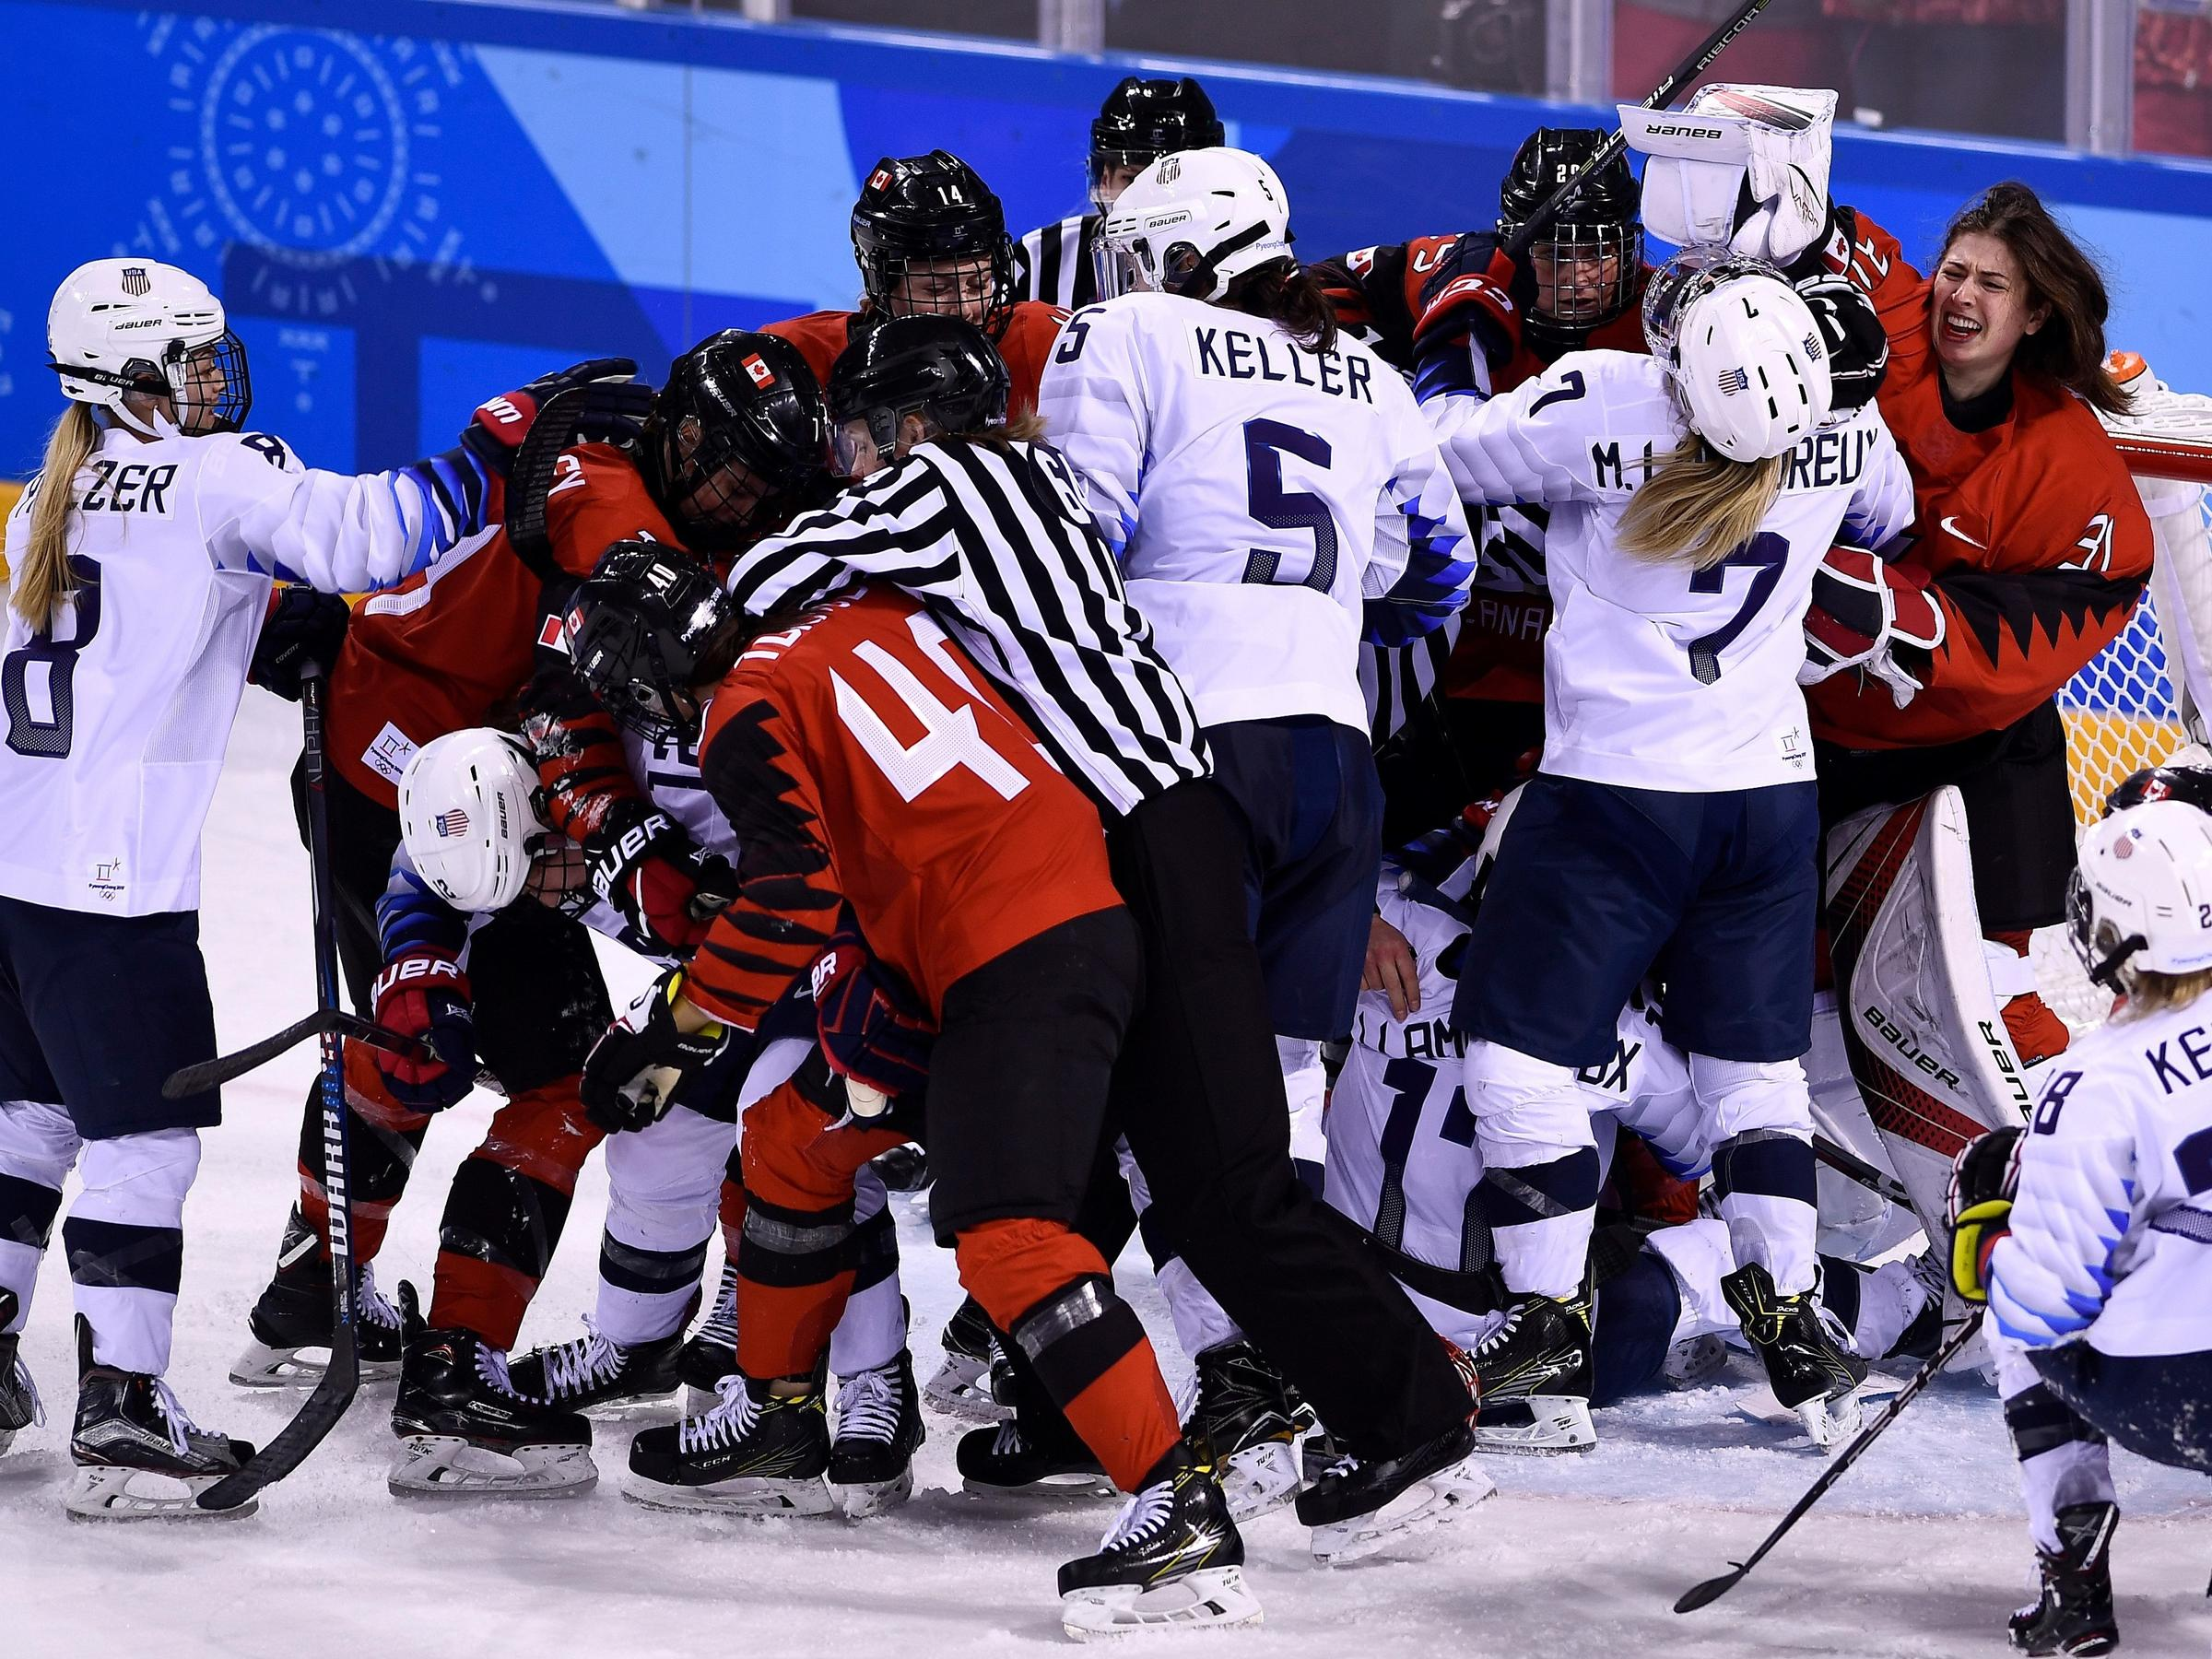 United States edges Canada to win gold medal in women's hockey